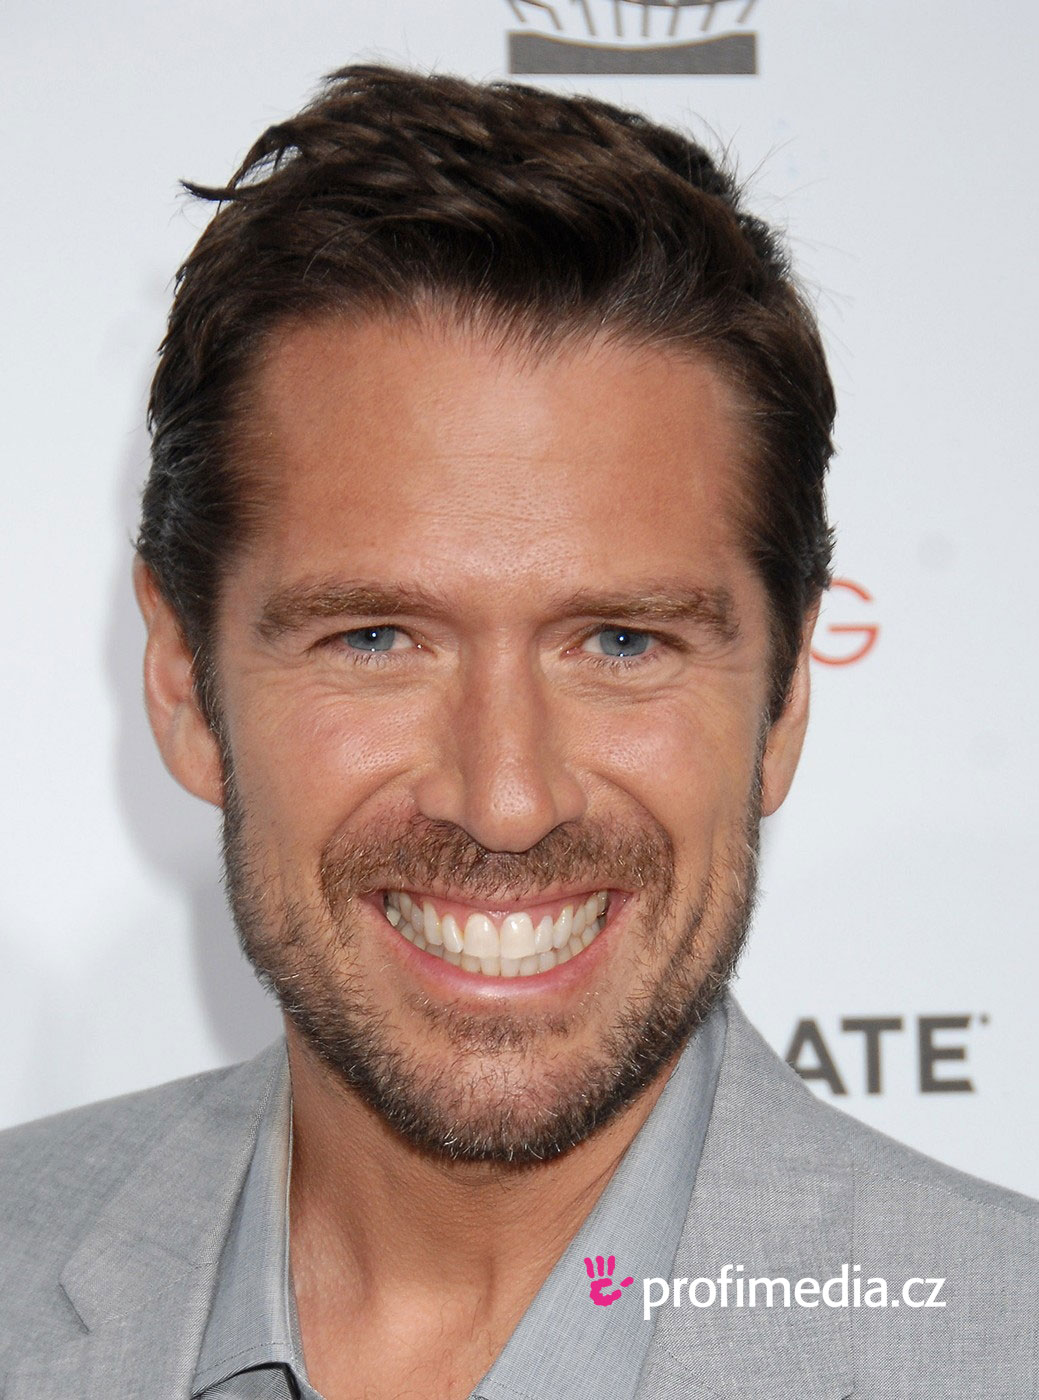 Alexis Denisof Hairstyle Easyhairstyler